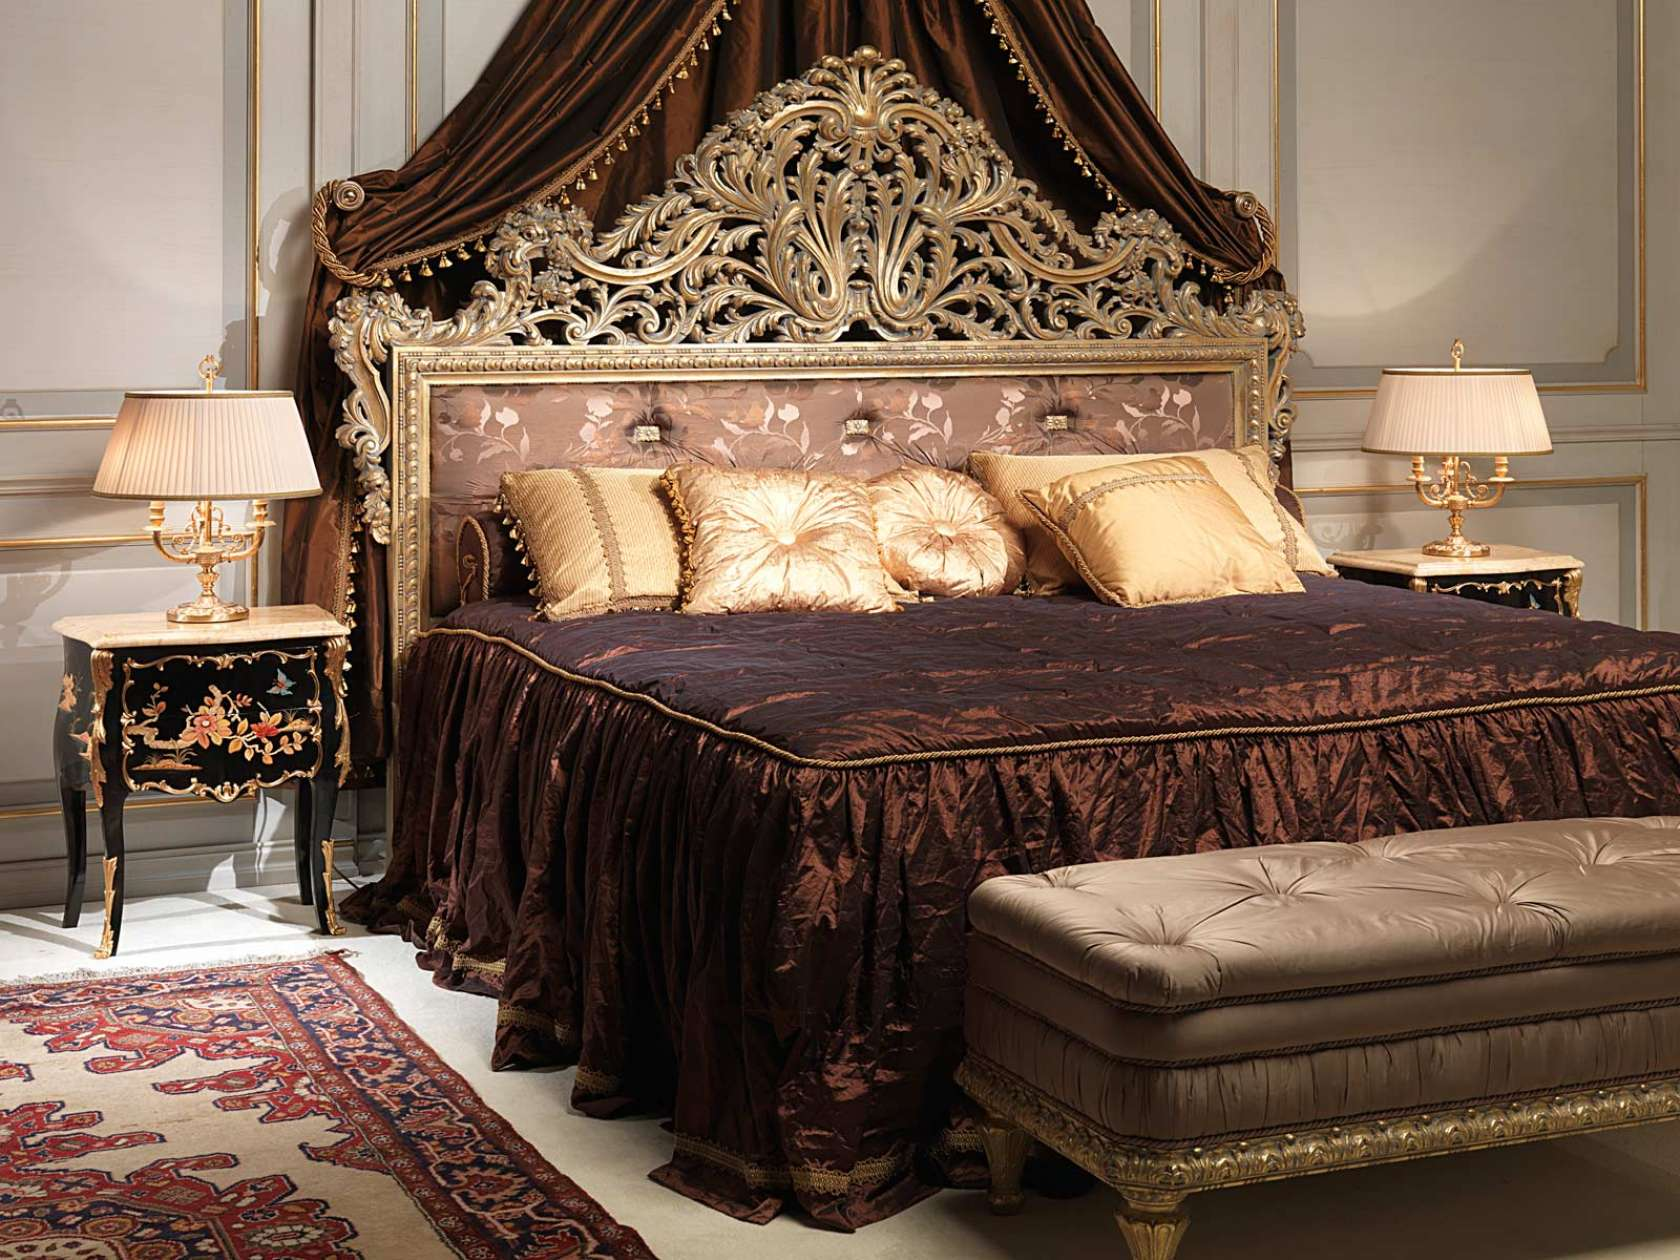 chambre coucher classique emperador gold lit grav tables de nuit grav es banc capitonn. Black Bedroom Furniture Sets. Home Design Ideas